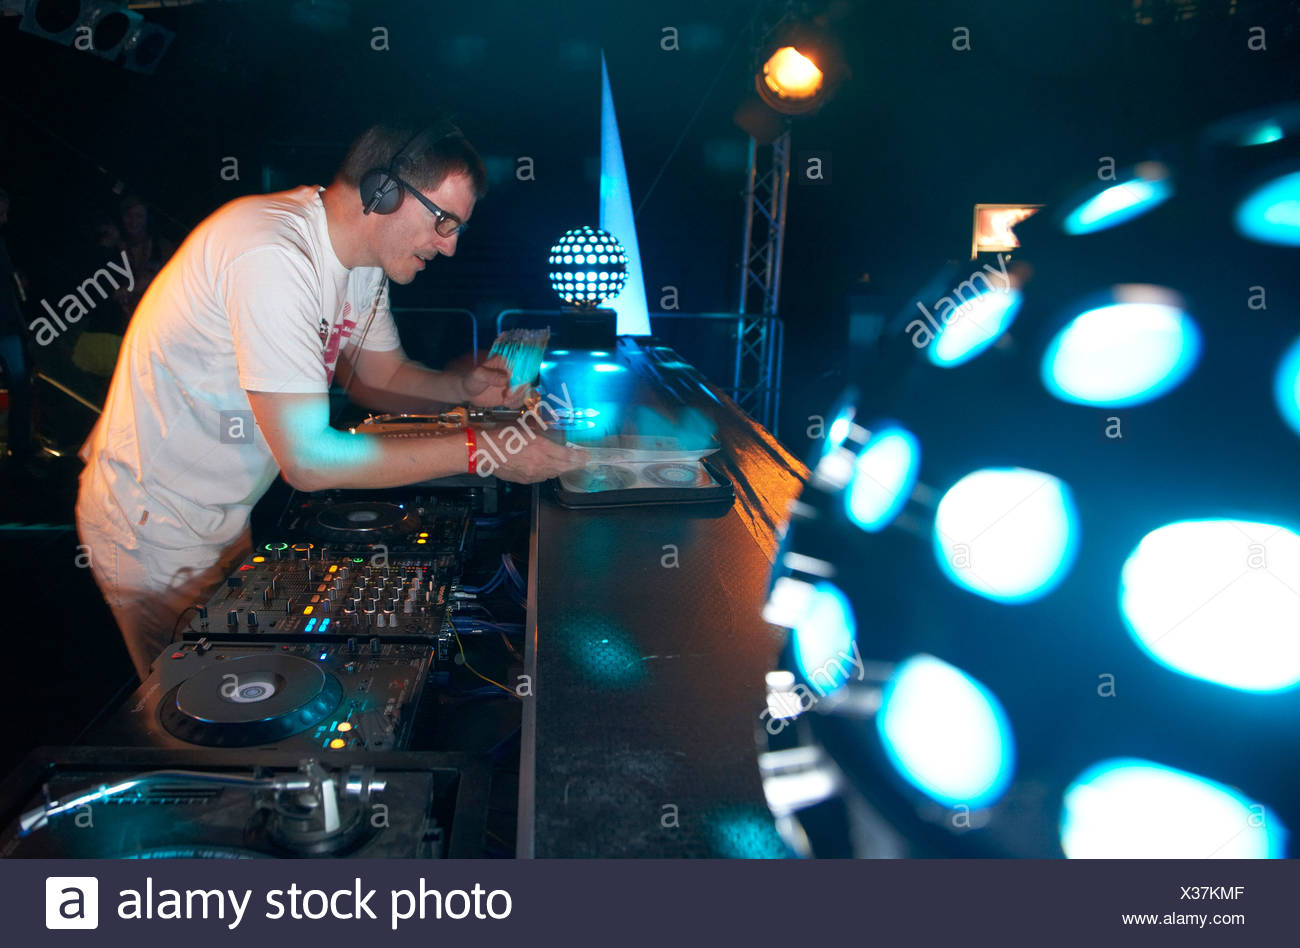 Techno Nature One Festival 2009, DJ Dr. Motte, Kastellaun, Rhineland-Palatinate, Germany, Europe - Stock Image